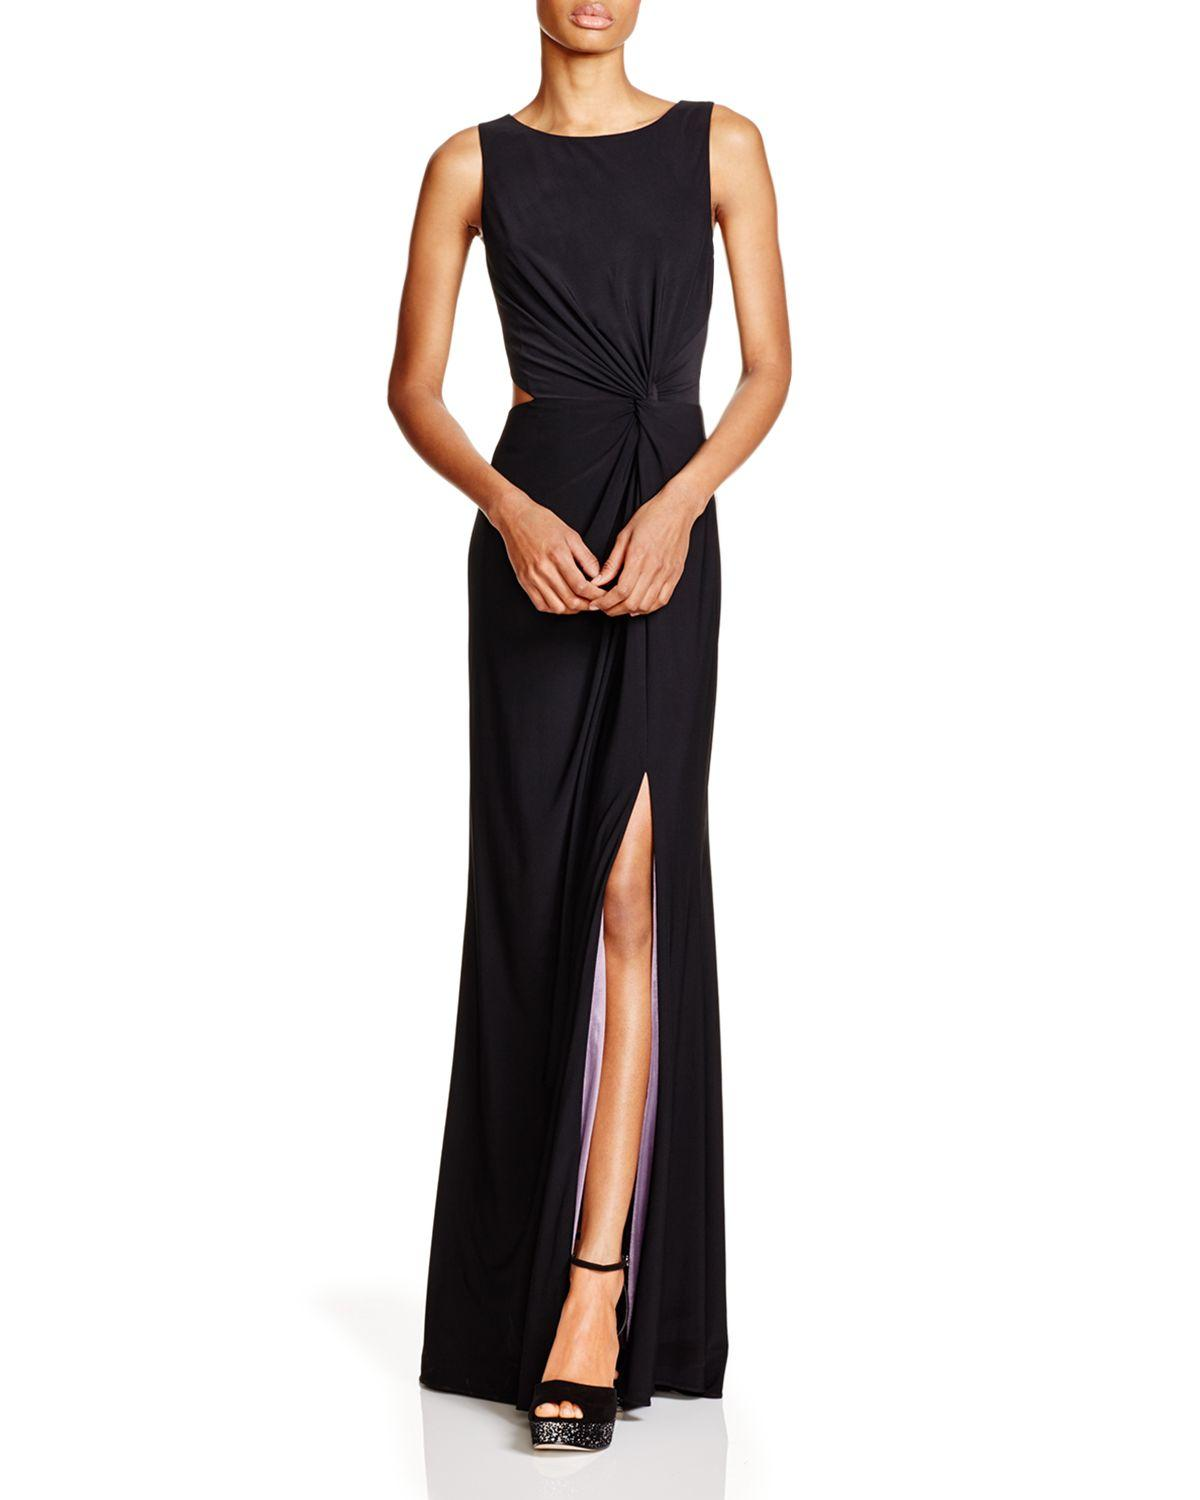 Lyst - Aqua Sleeveless Cutout Side Gown - 100% Exclusive in Black